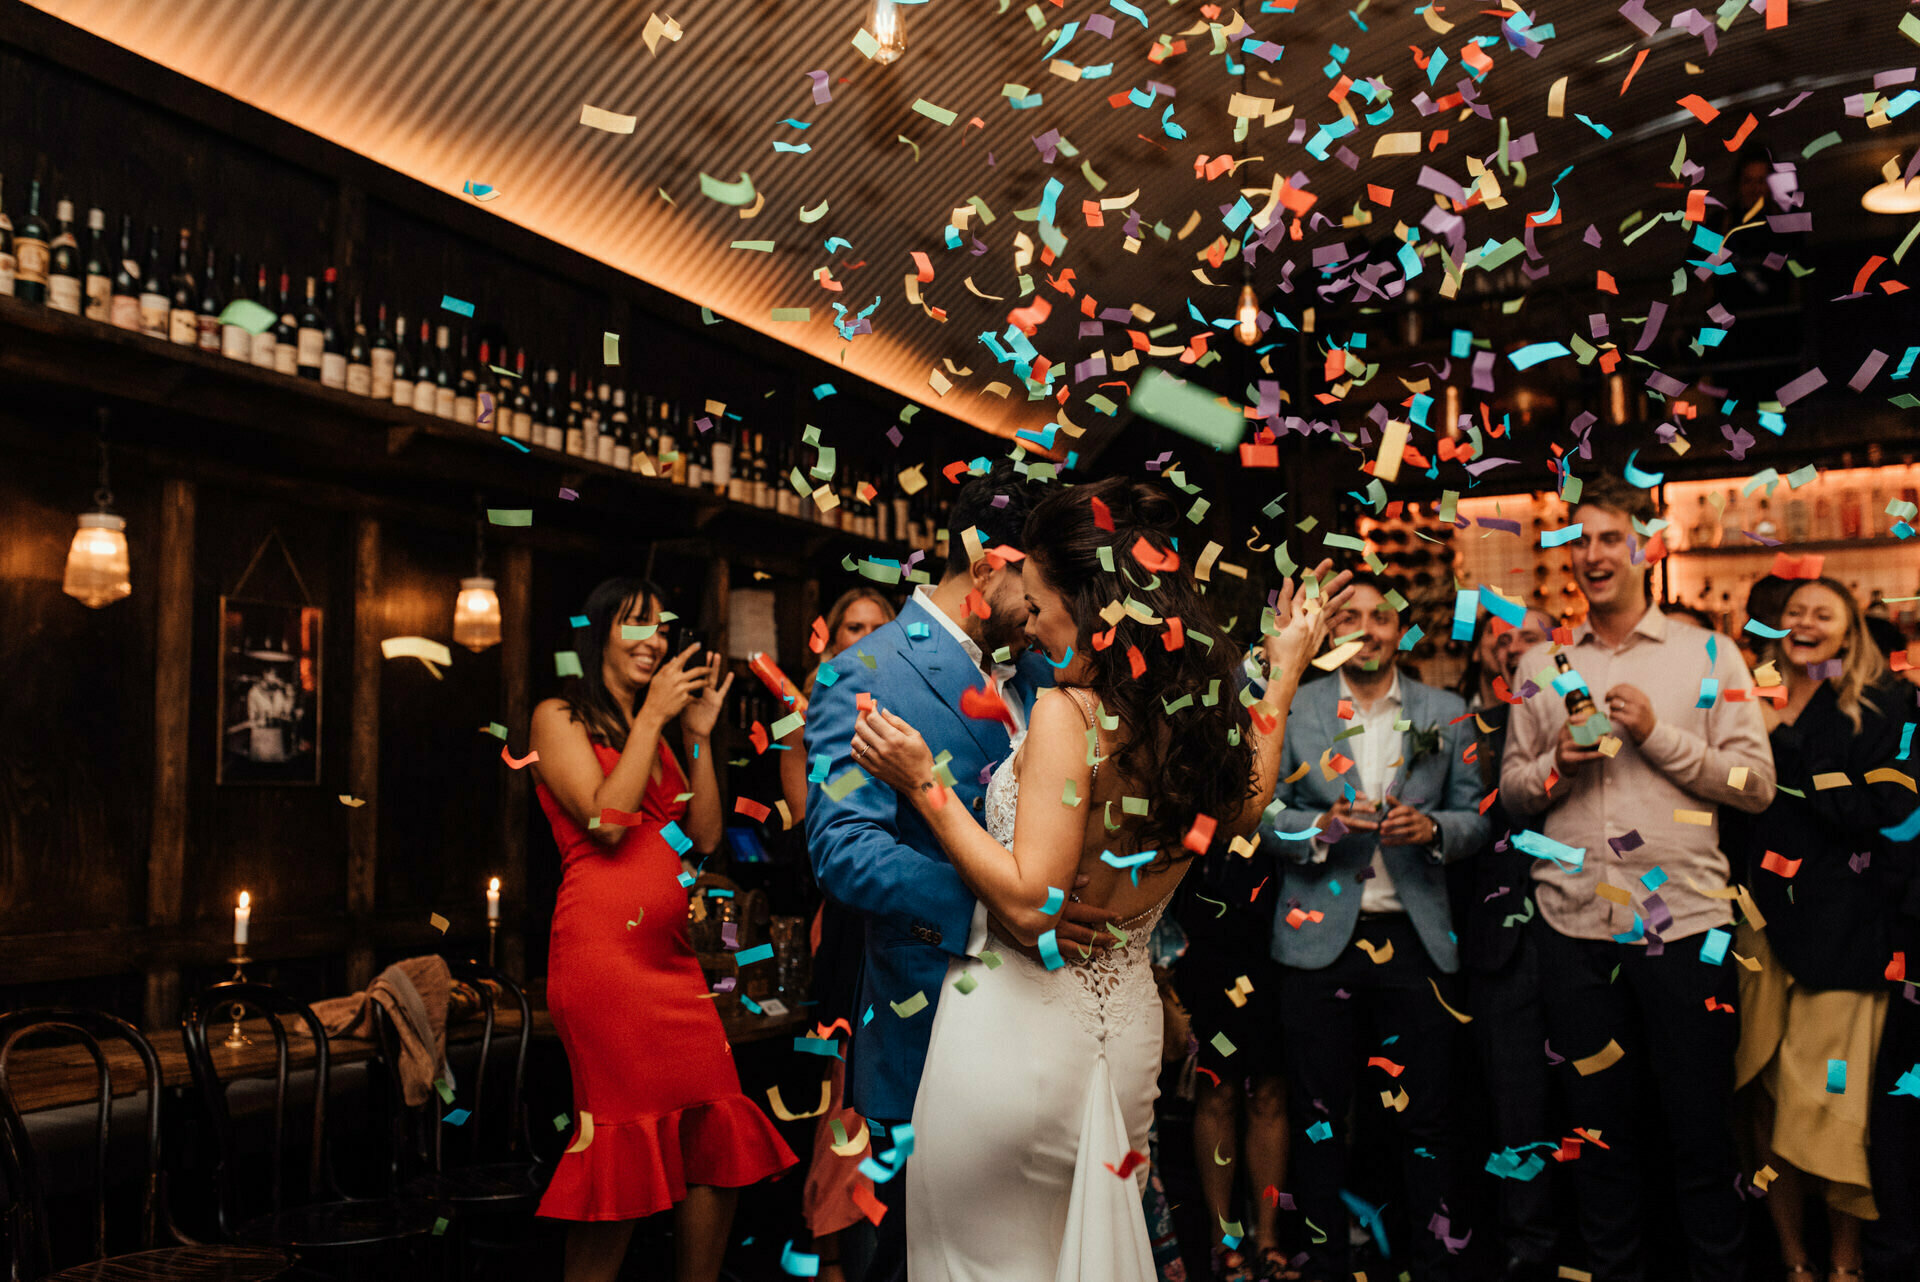 Bride and groom enjoy their first dance in a London wine bar, covered in colourful confetti